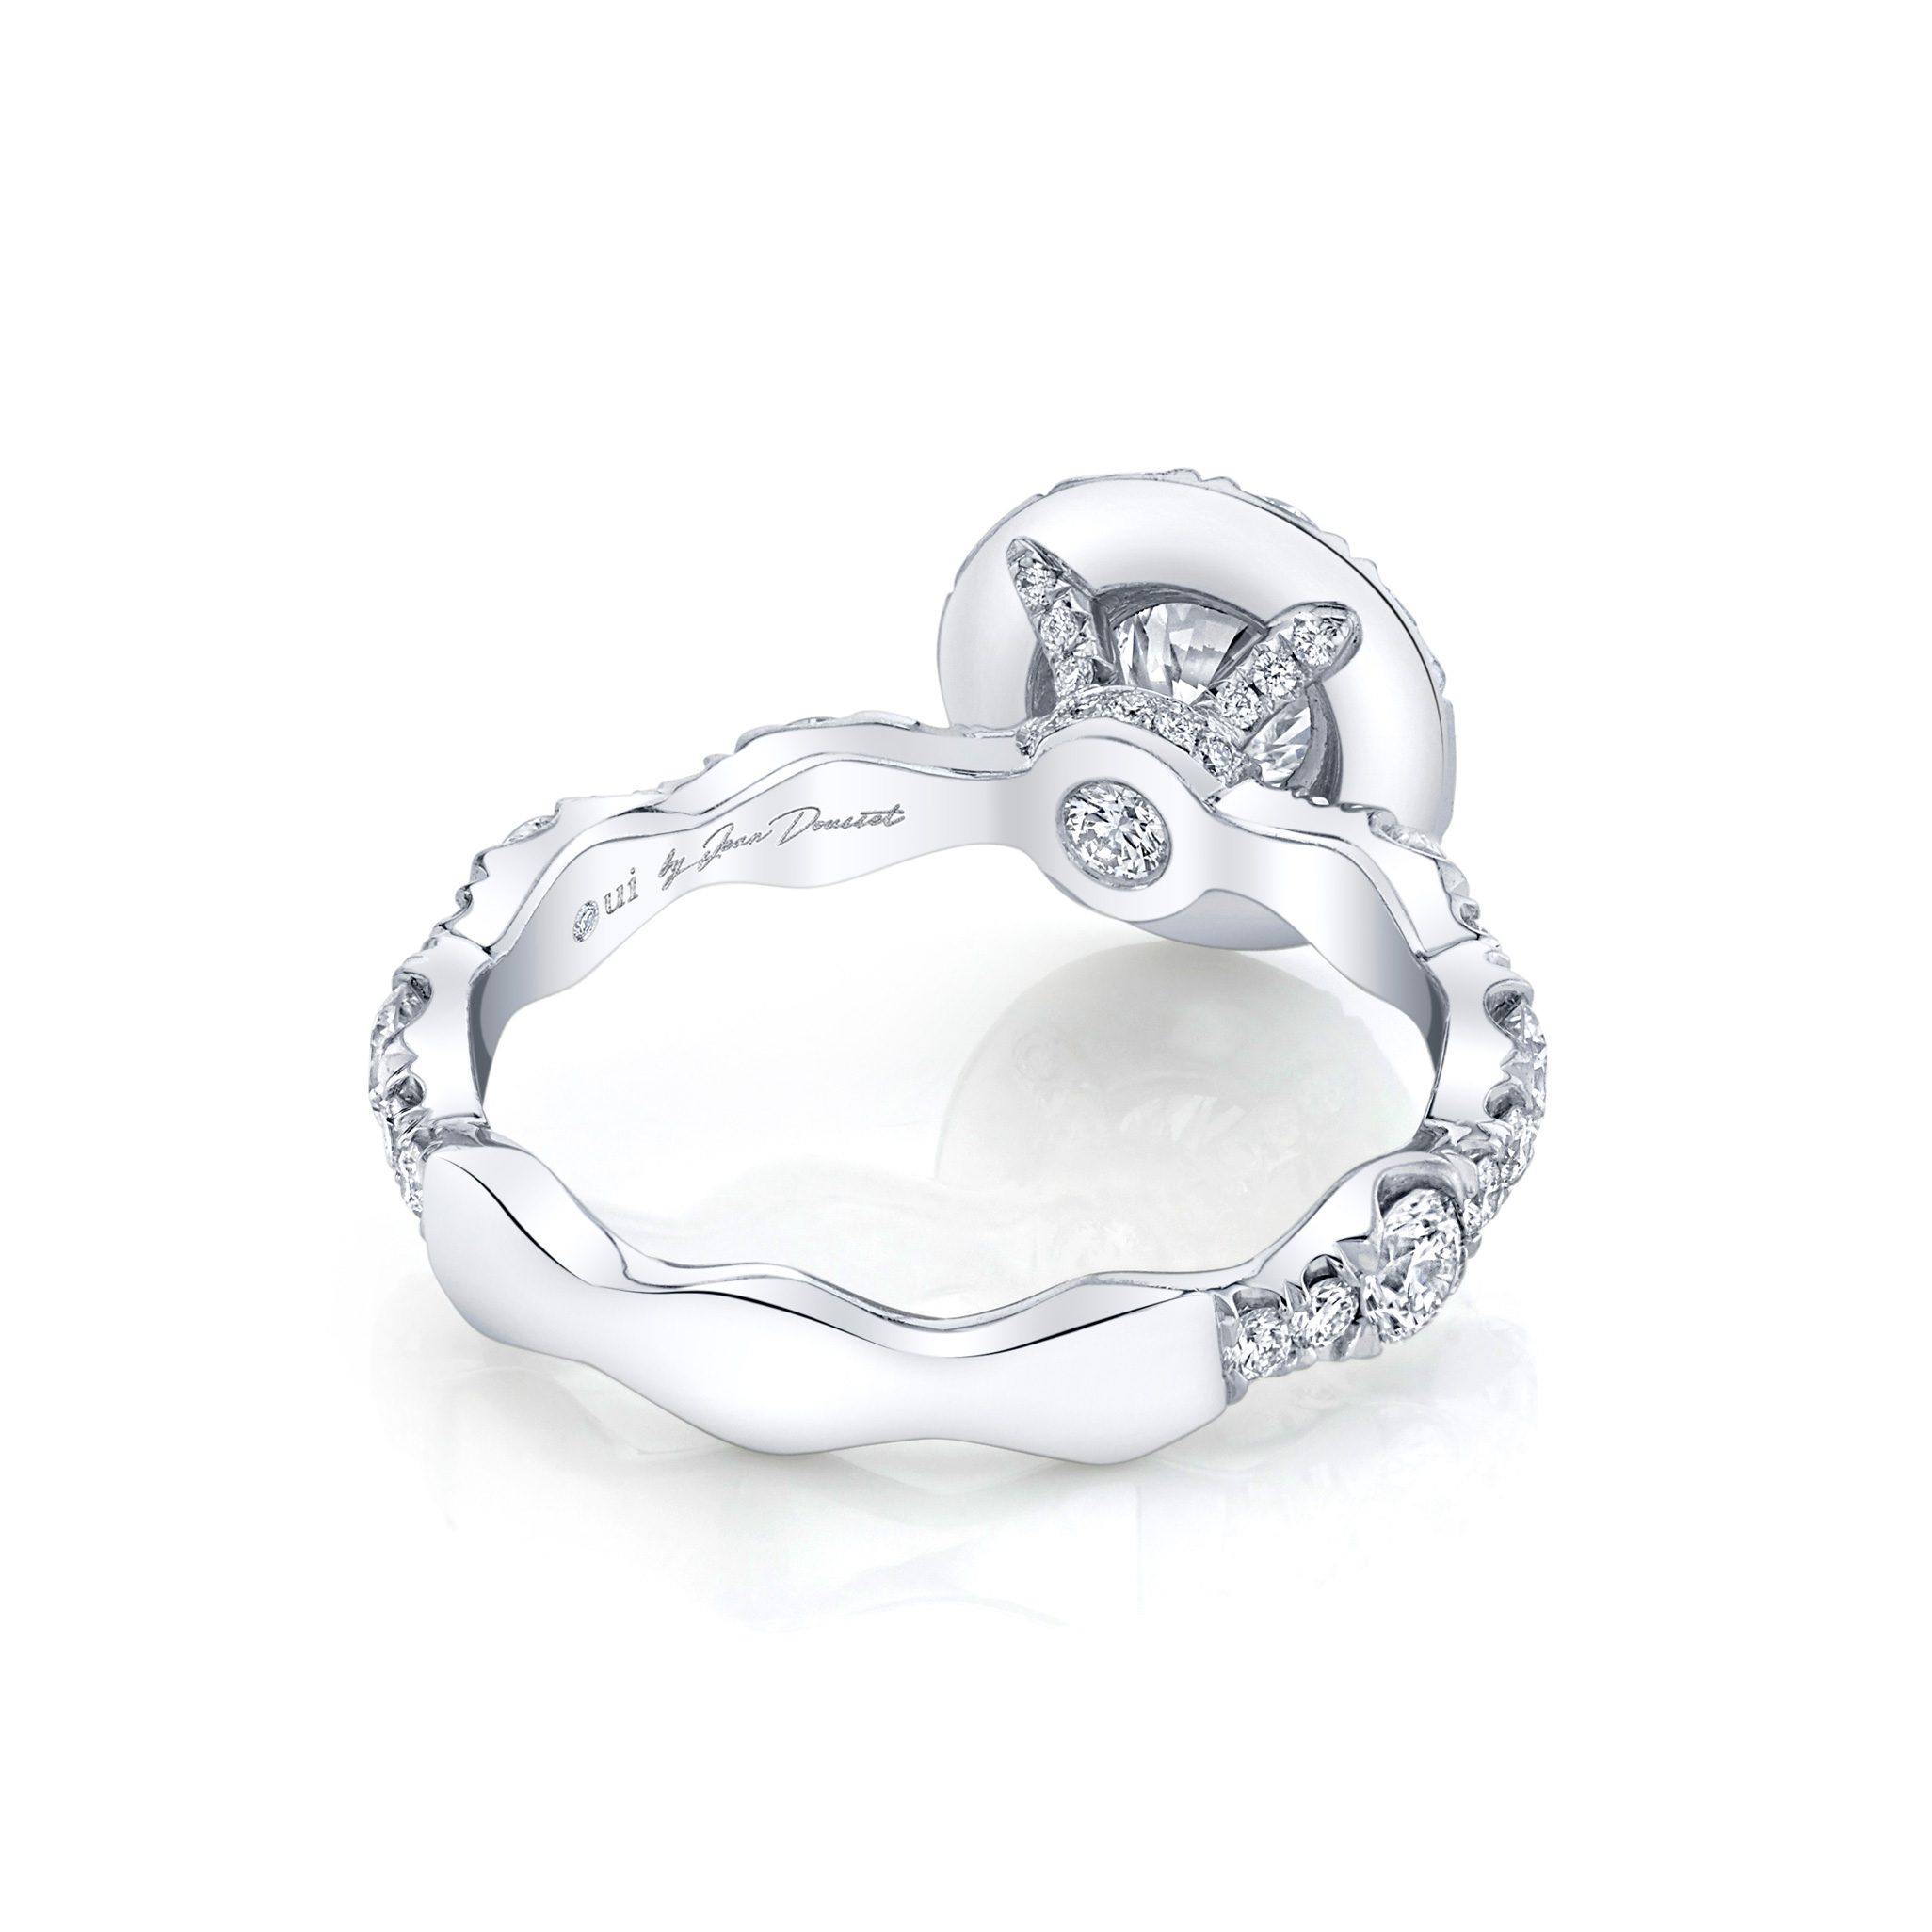 Yvonne Floating Round Brilliant Seamless Solitaire® Engagement Ring 18k White Gold Back View by Oui by Jean Dousset